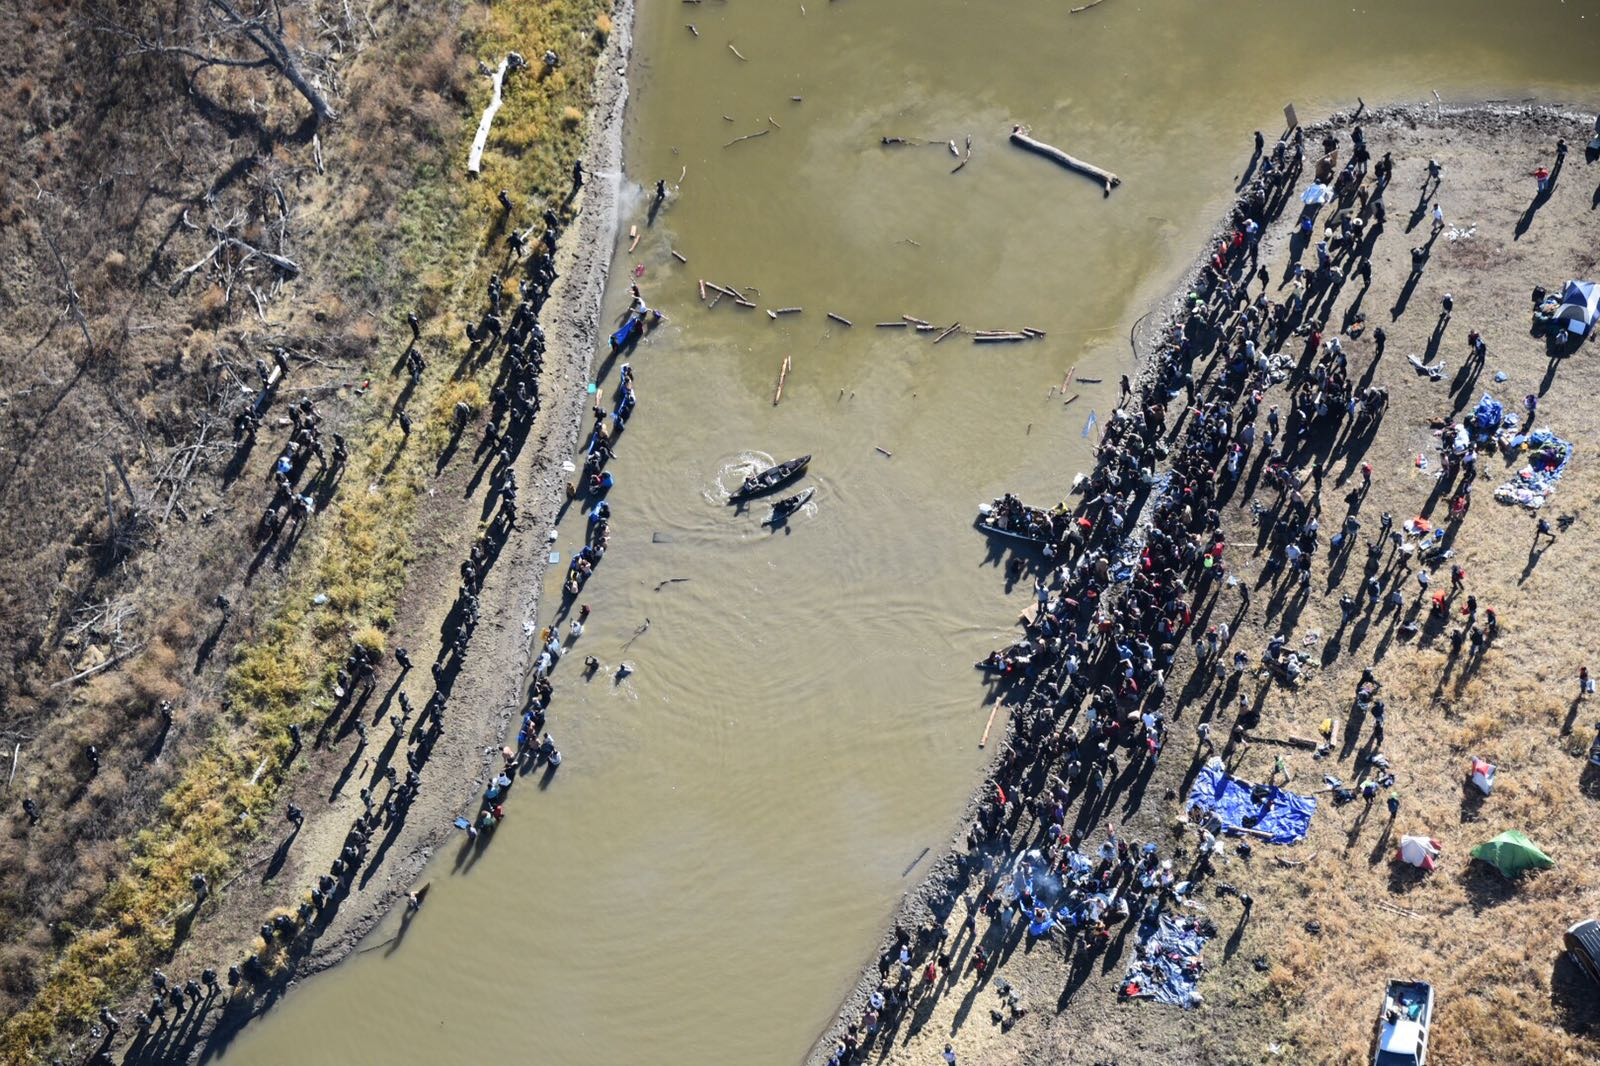 Protesters in water from above_1478116848889.jpg